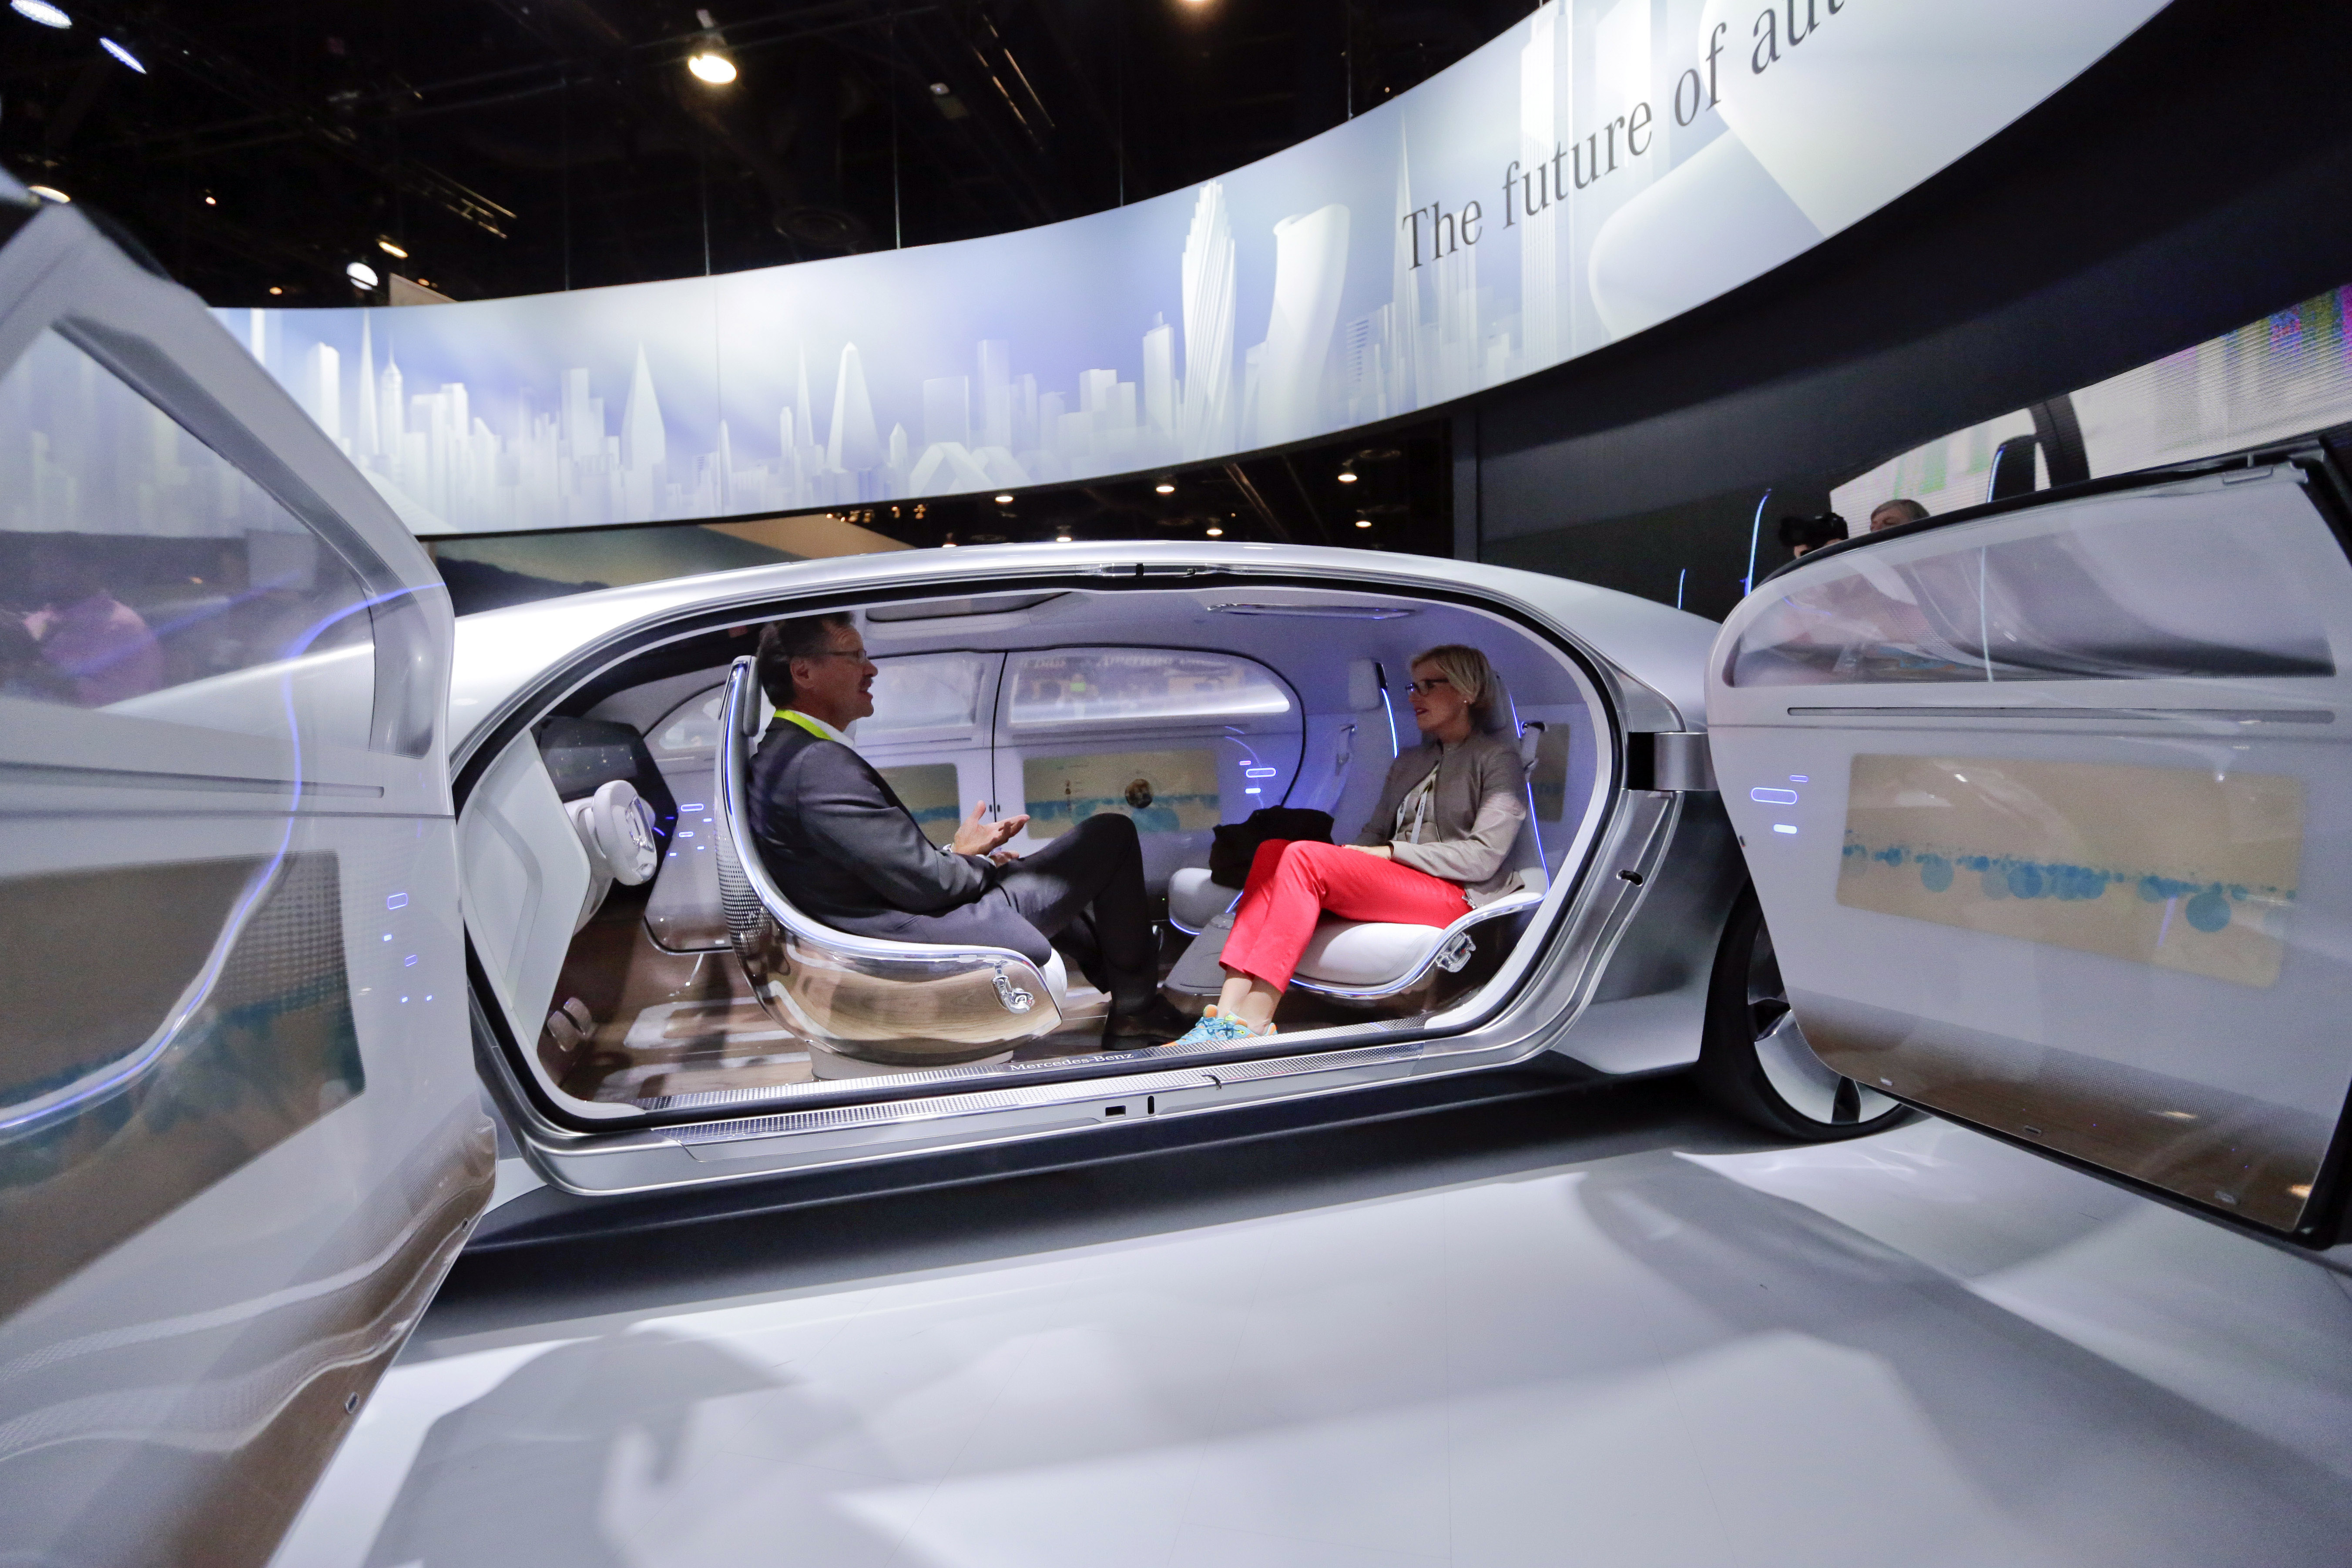 Expert: Self-driving cars could pose security risks